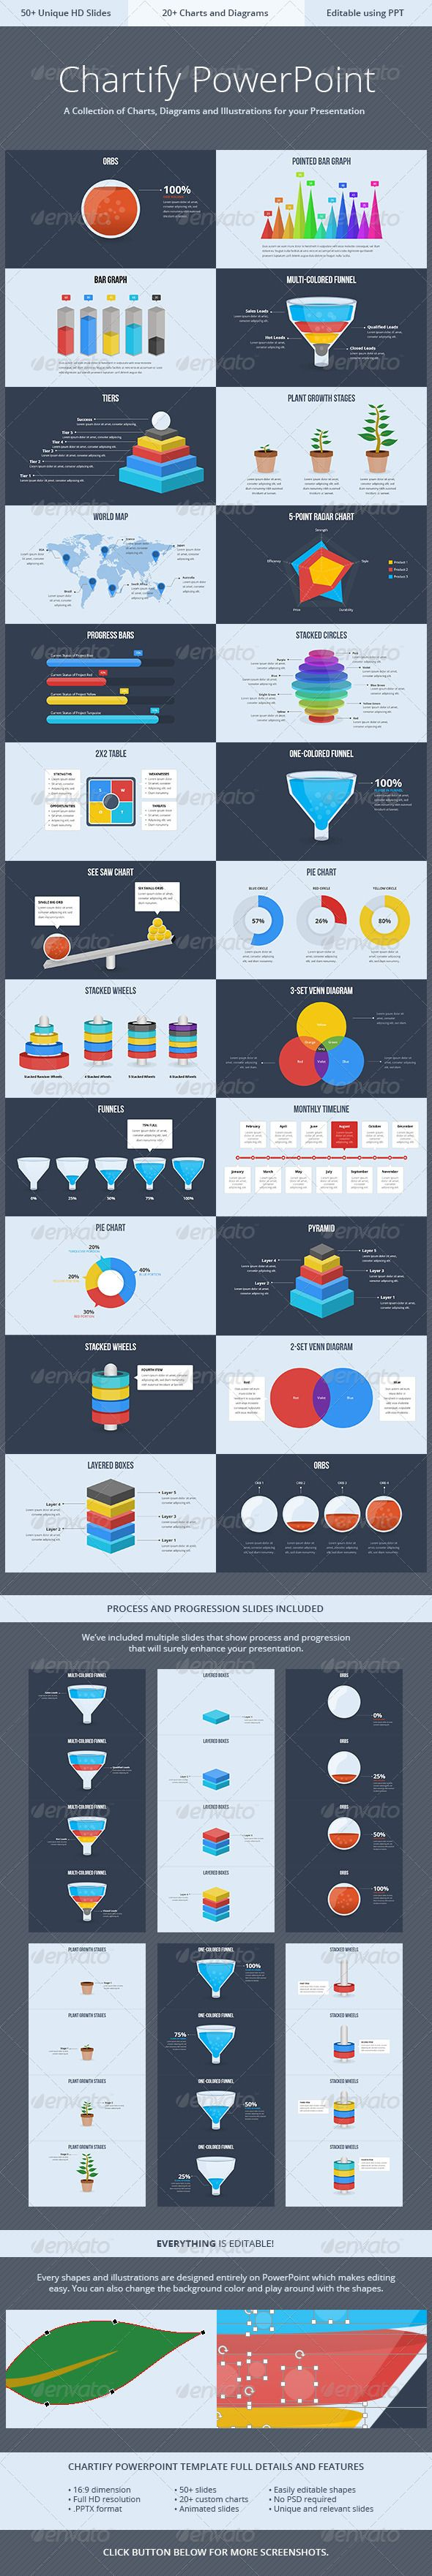 15 best images about graphics iconography on pinterest chartify powerpoint template toneelgroepblik Gallery